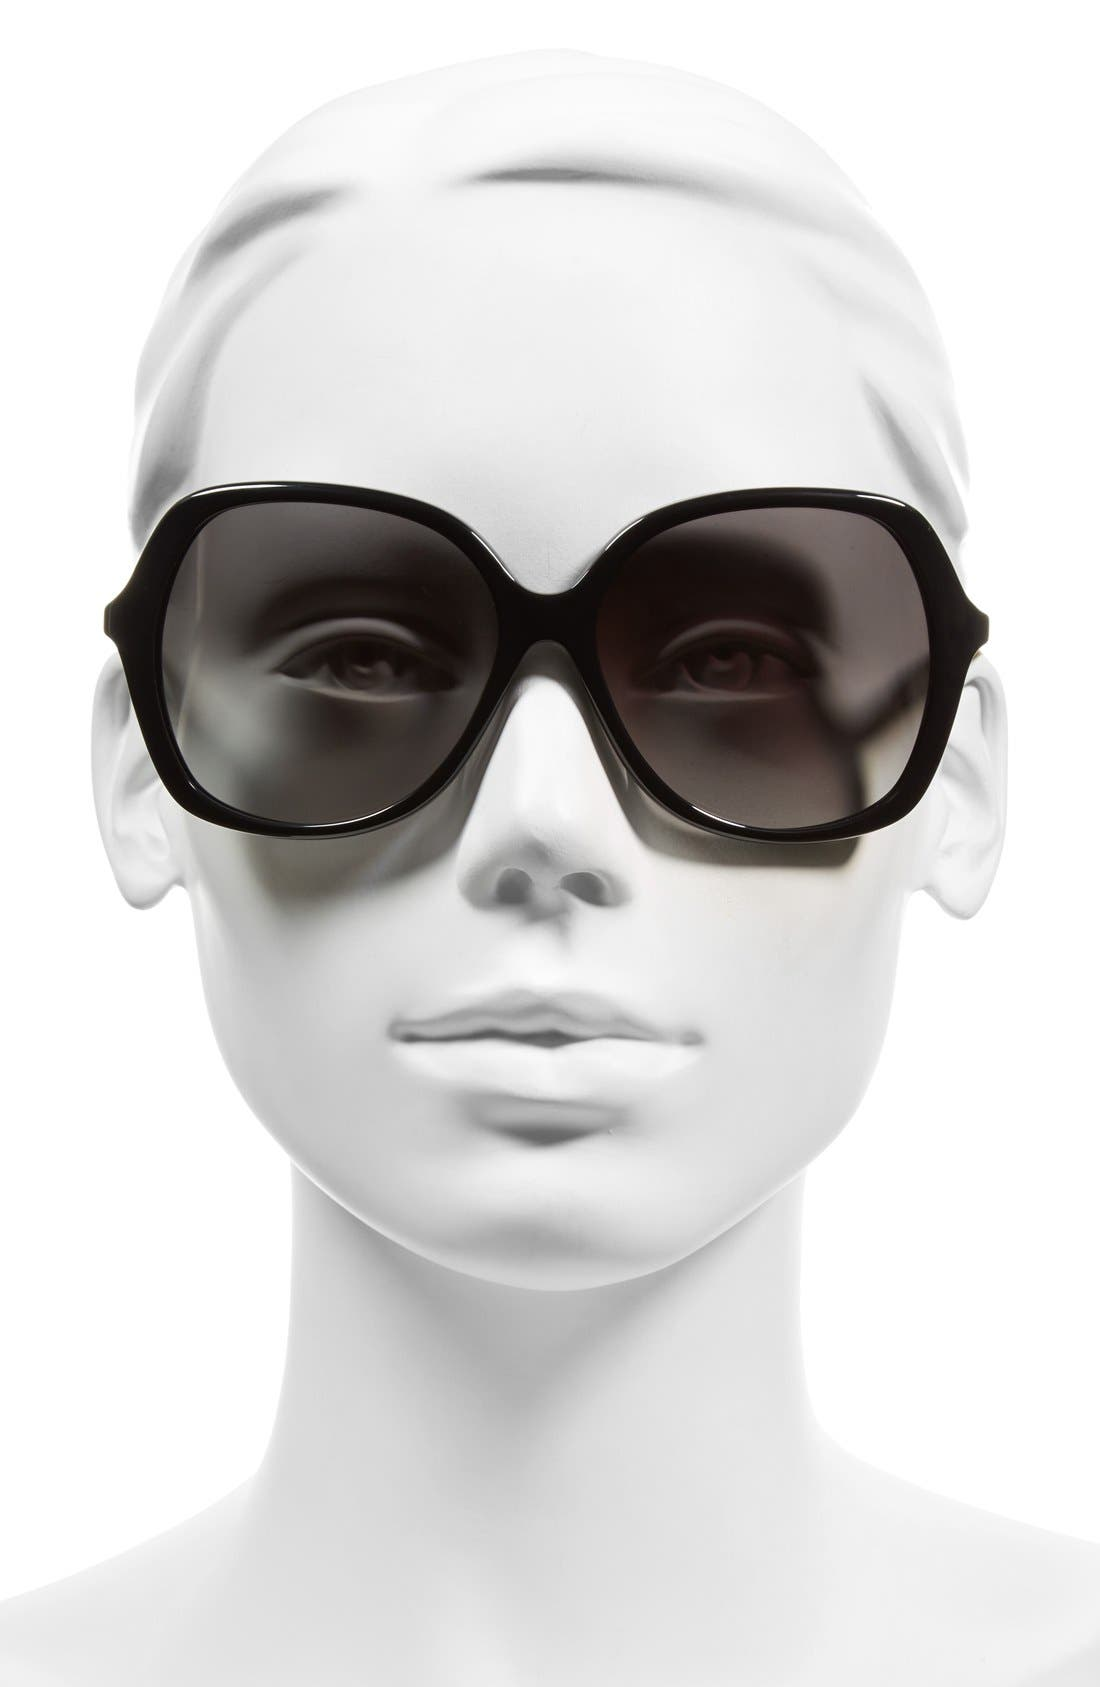 KATE SPADE NEW YORK,                             'jonell' 58mm oversized sunglasses,                             Alternate thumbnail 2, color,                             001